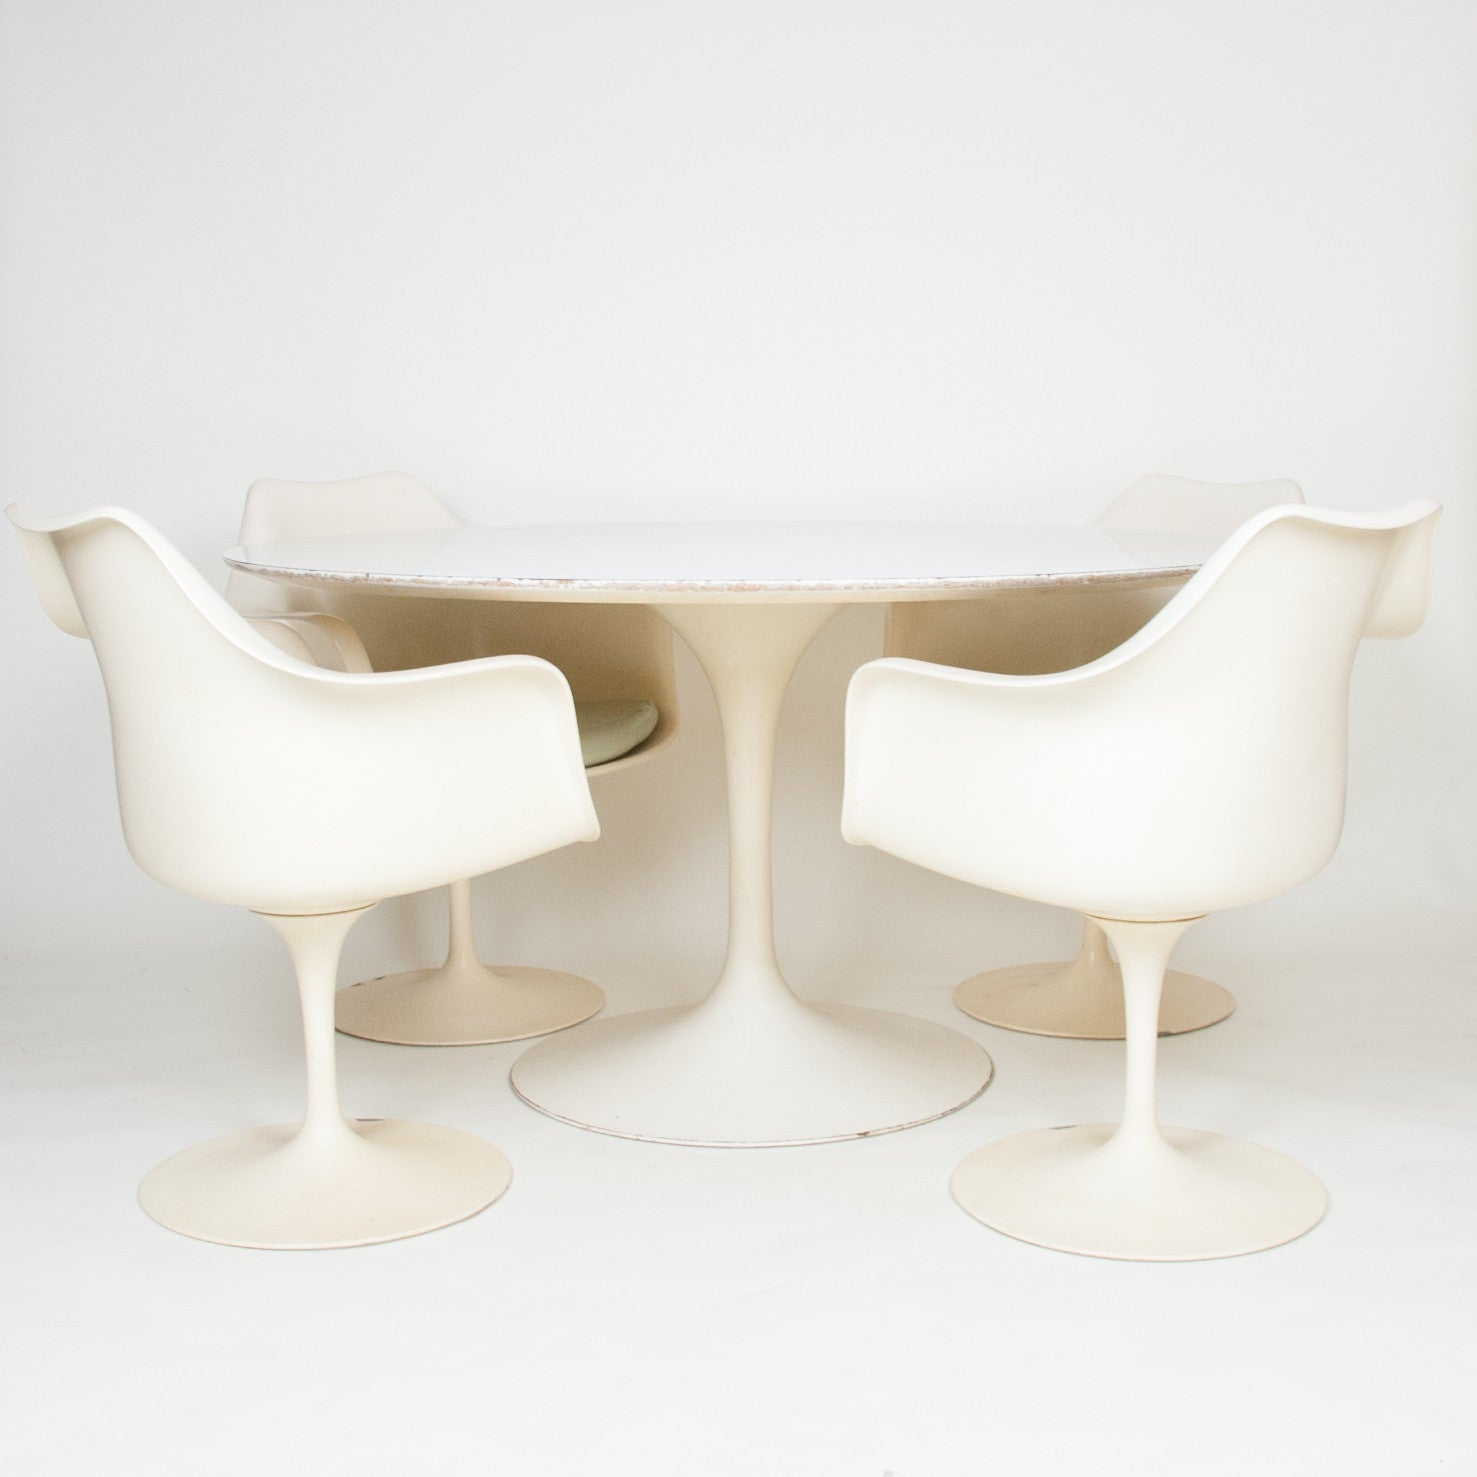 SOLD Eero Saarinen For Knoll 54 Inch Tulip Conference / Dining Table with 4 Tulip Arm Chairs 1960's Vintage